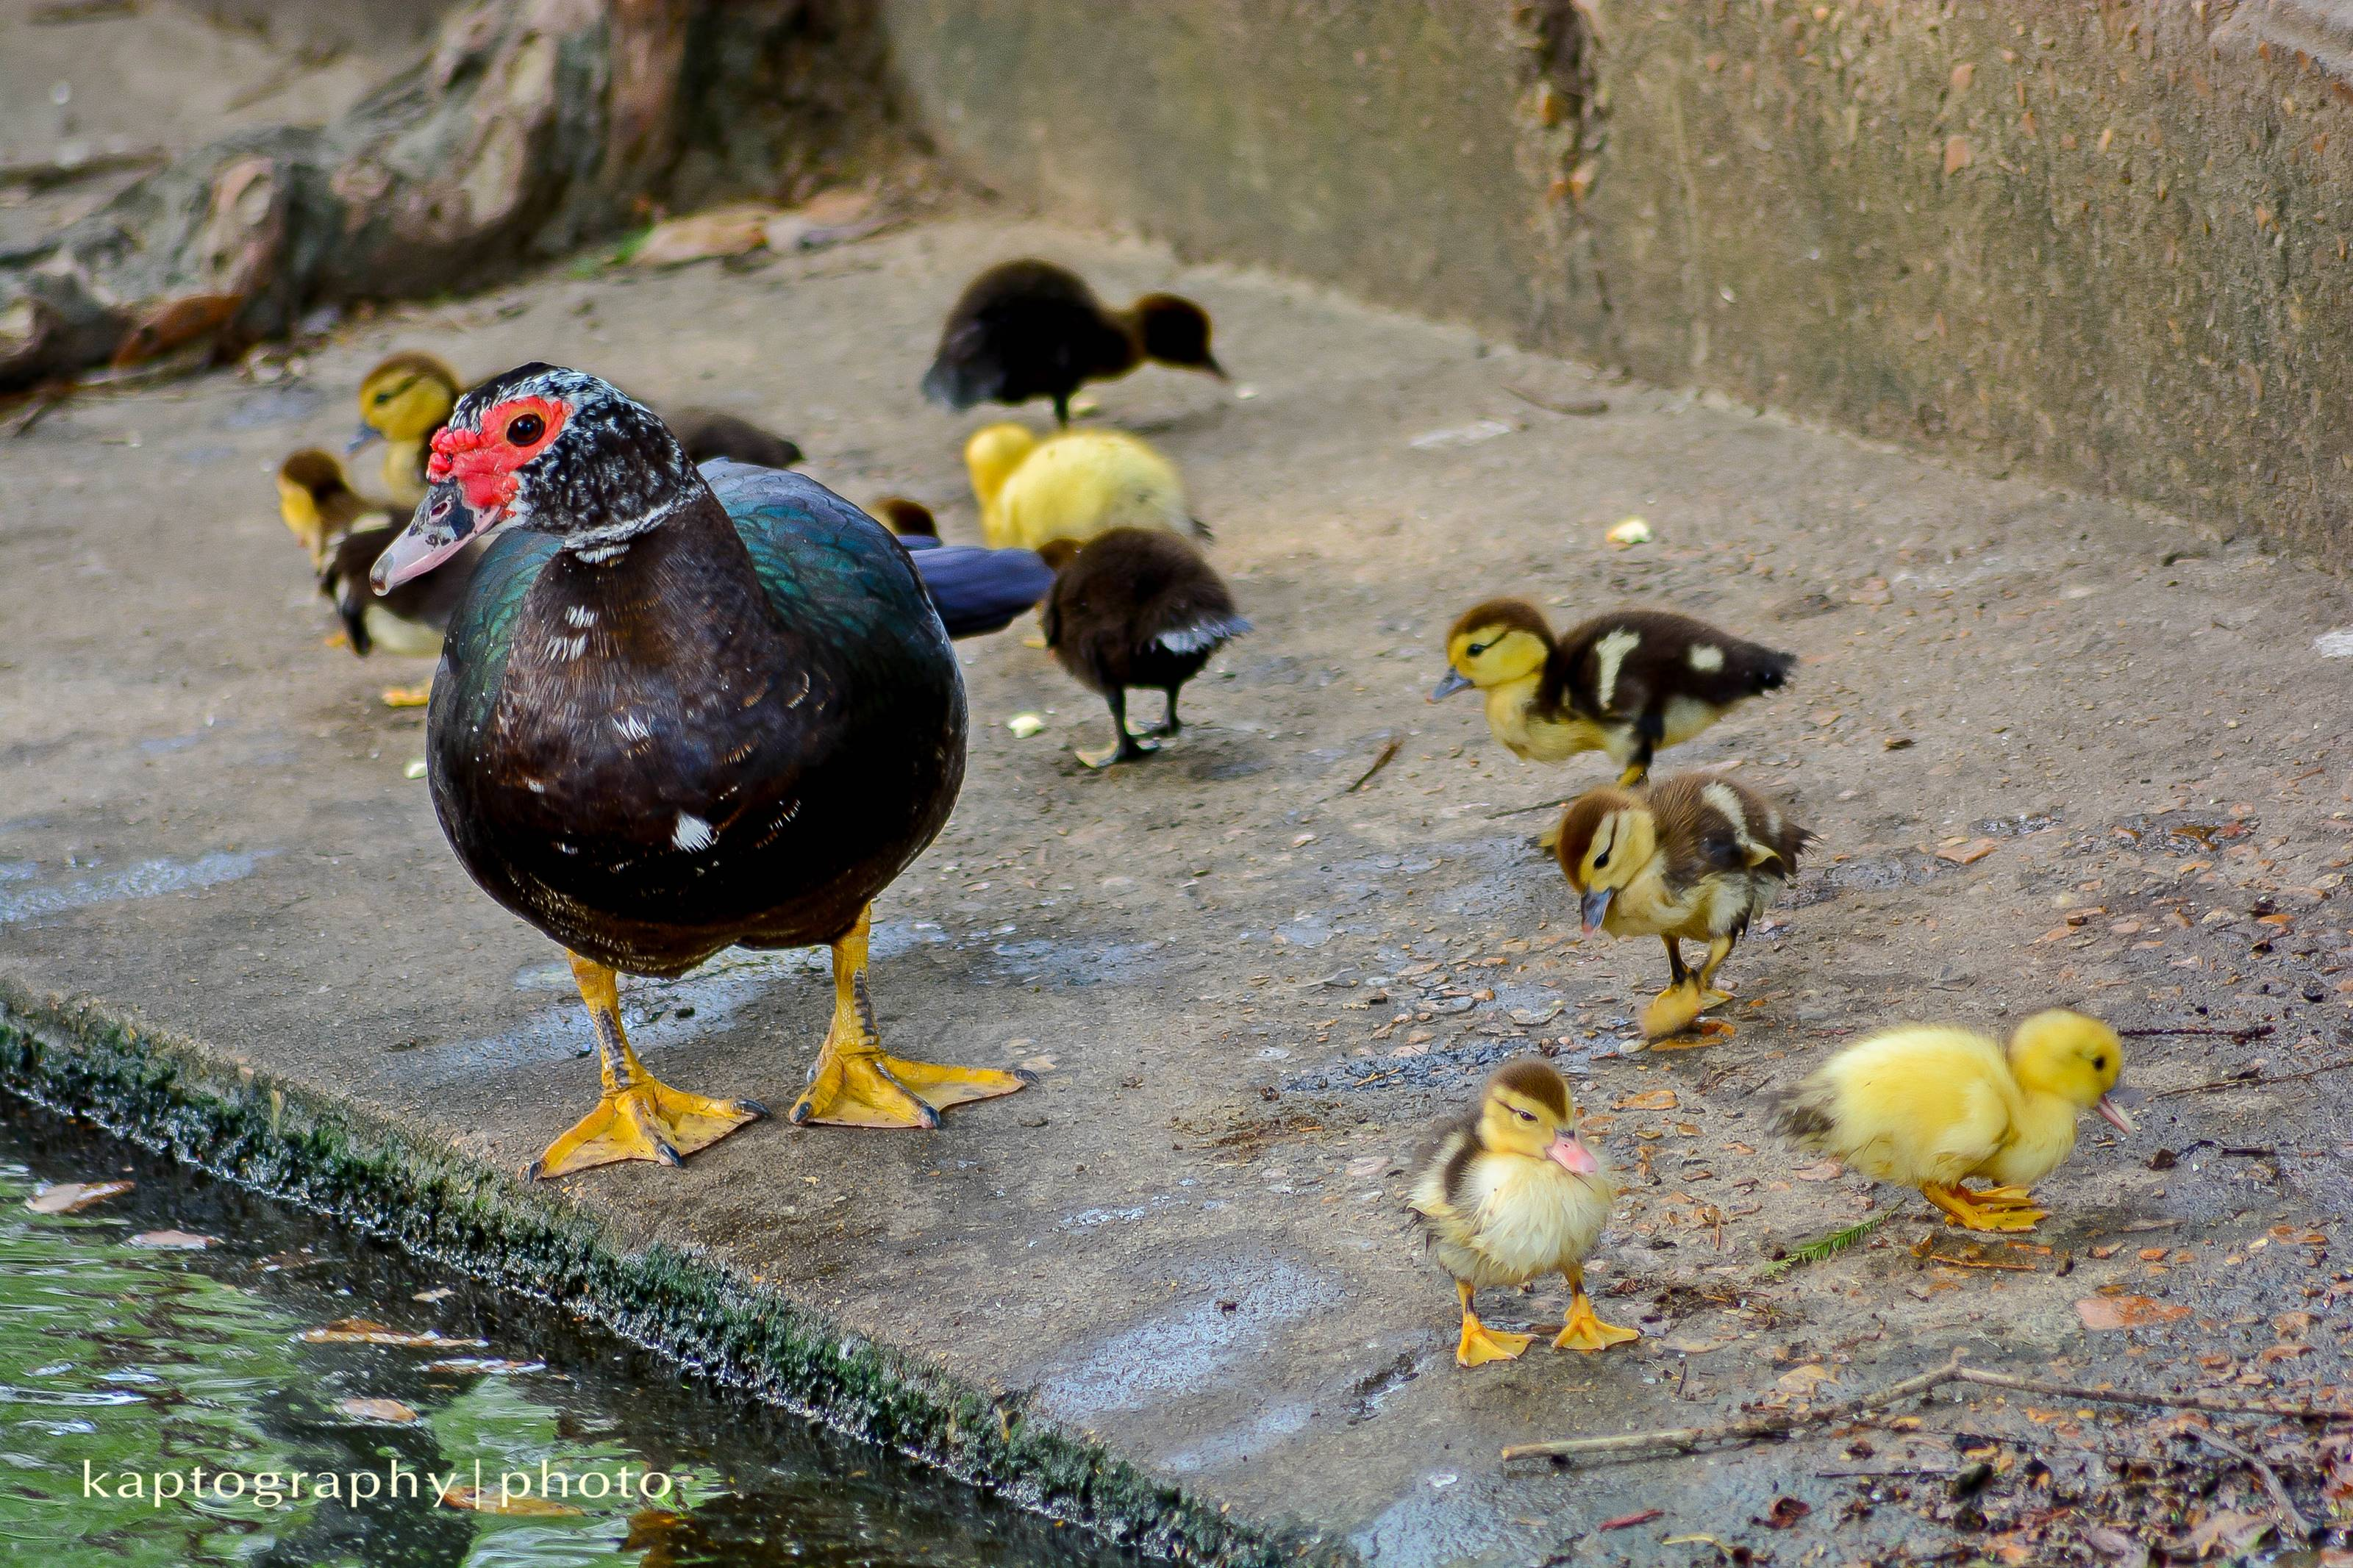 Baby Ducks with Mother Duck at Girard Park  